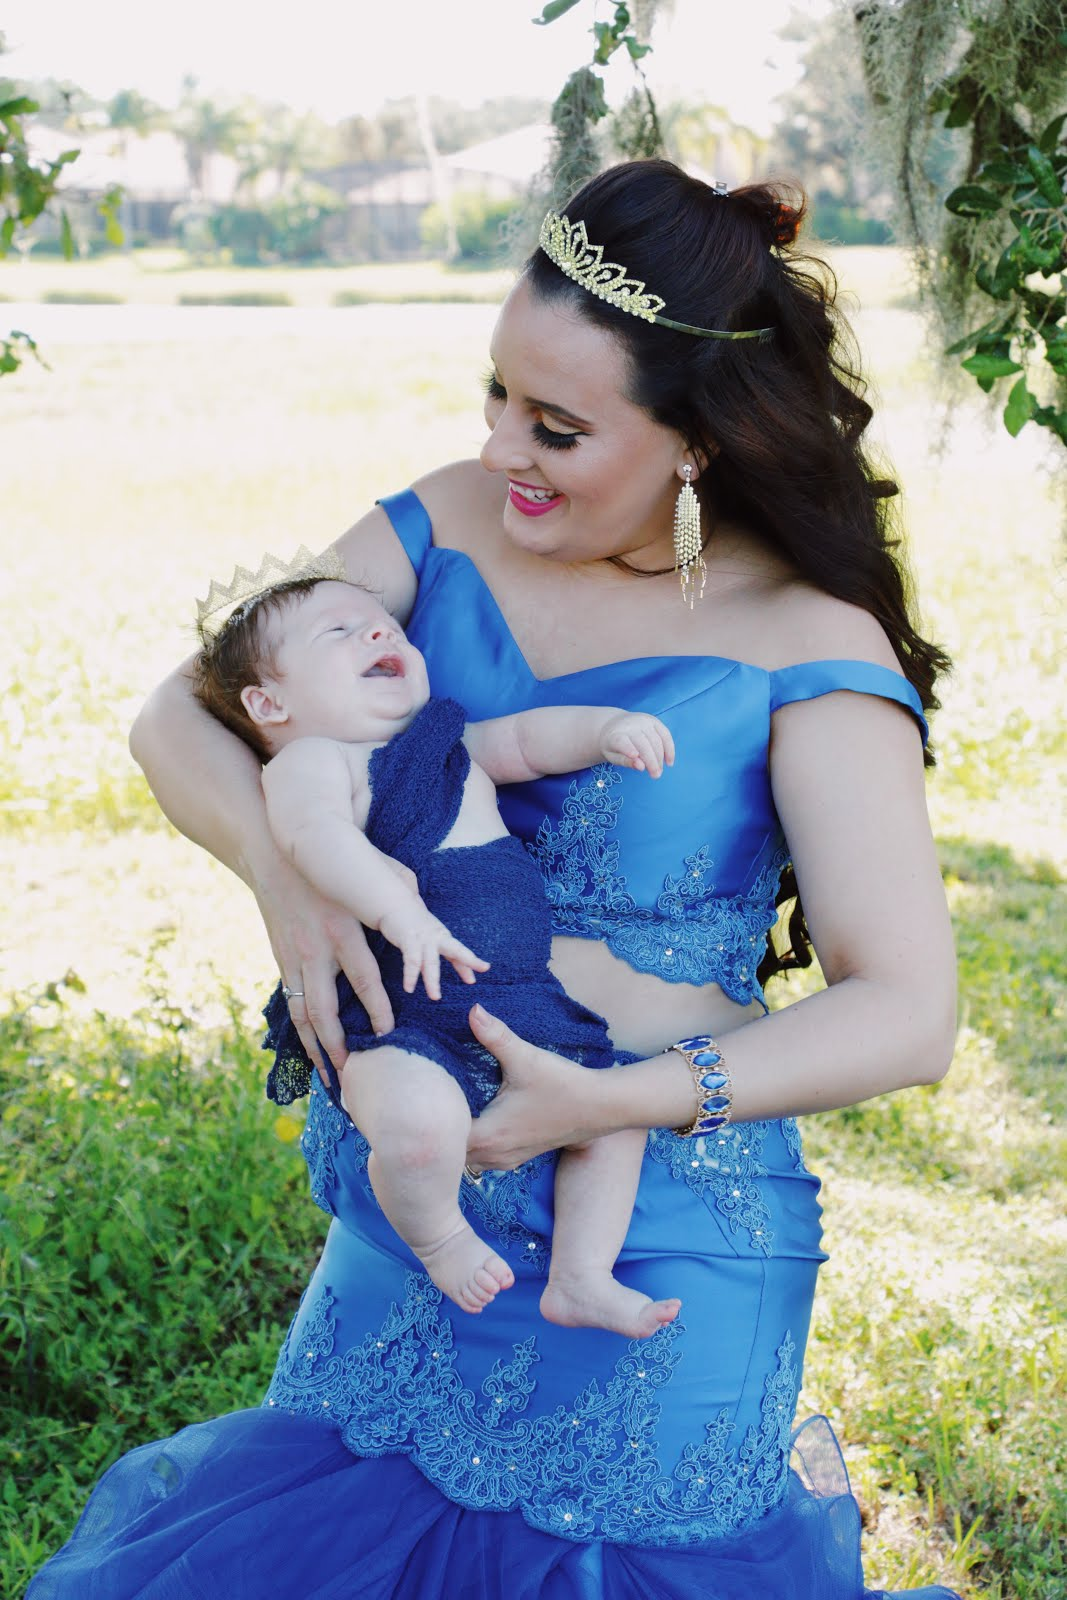 Mama-Queen-Baby-Prince-Royal -Photoshoot-Vivi-Brizuela